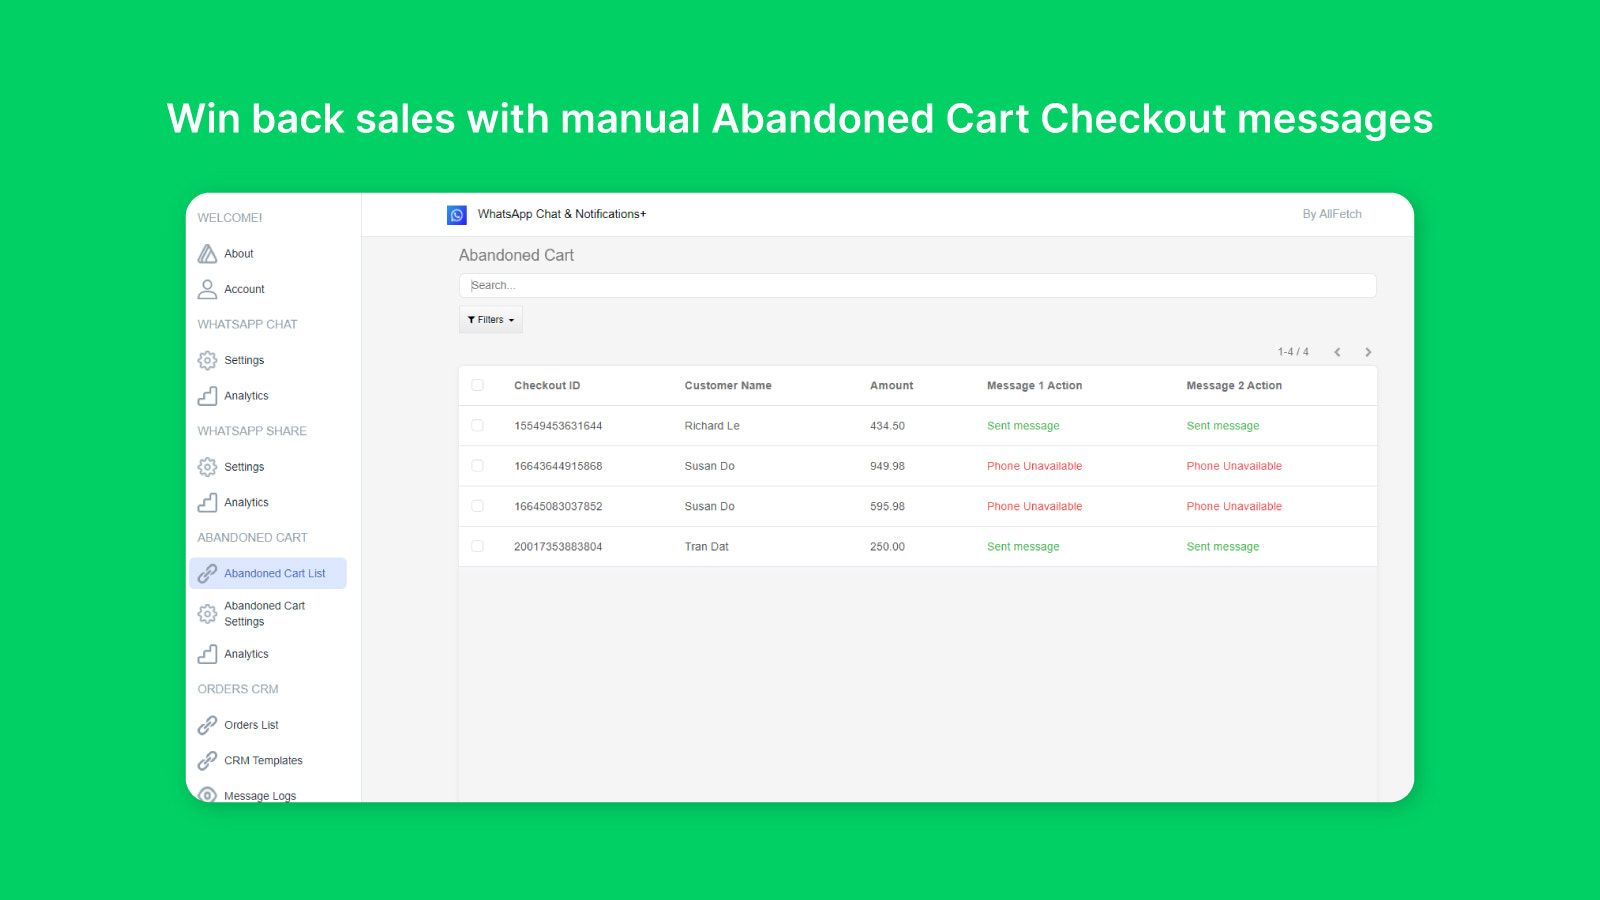 Win back sales with manual Abandoned Cart Checkout messages